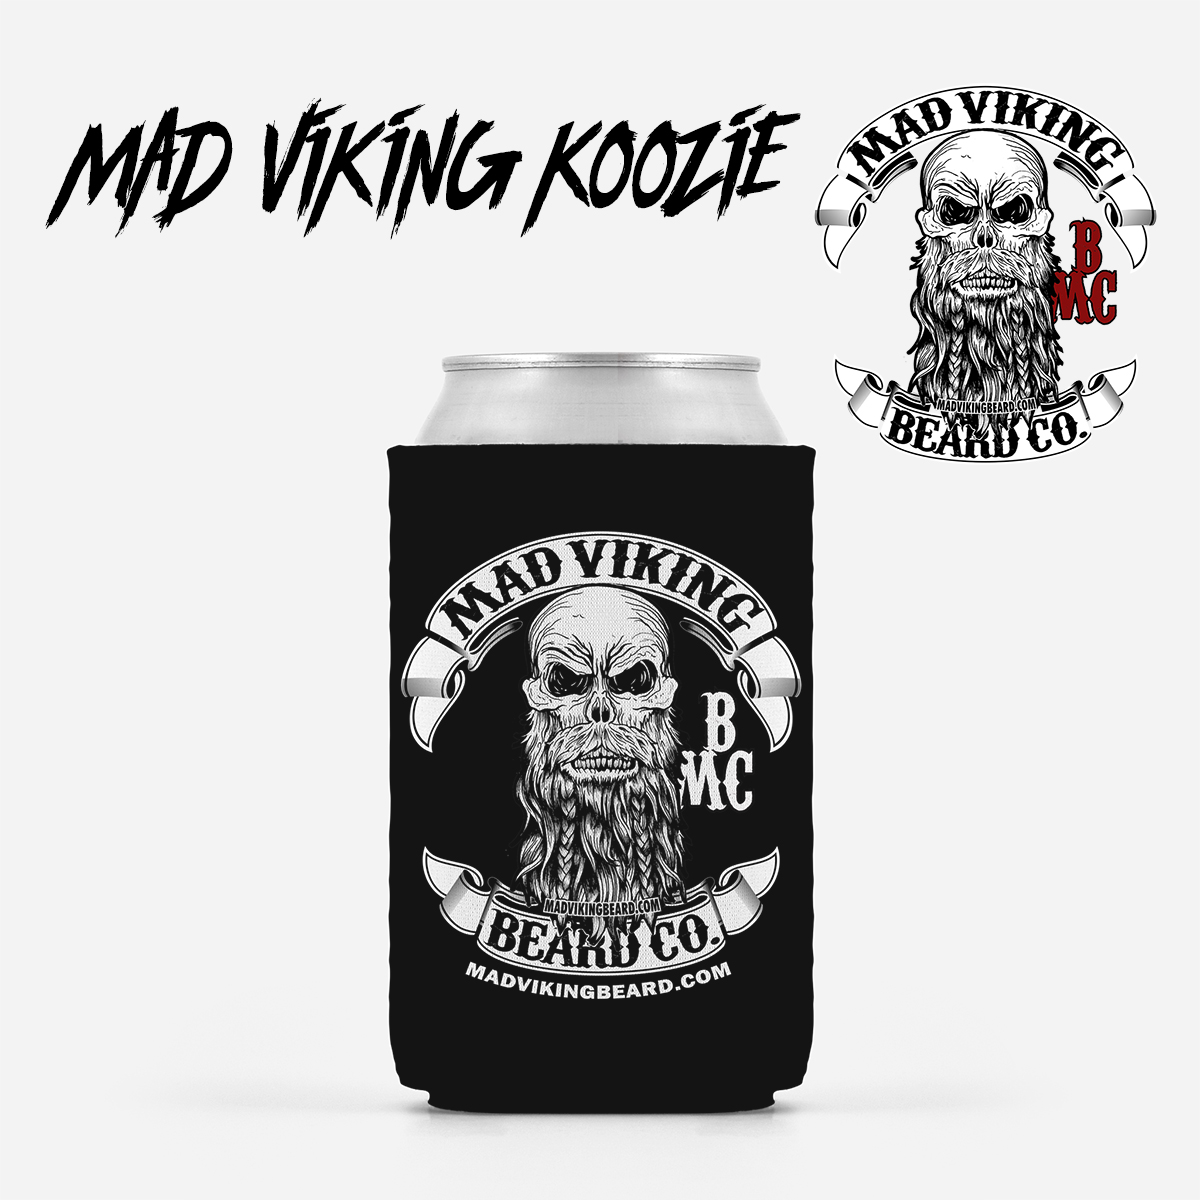 Mad Viking Koozie